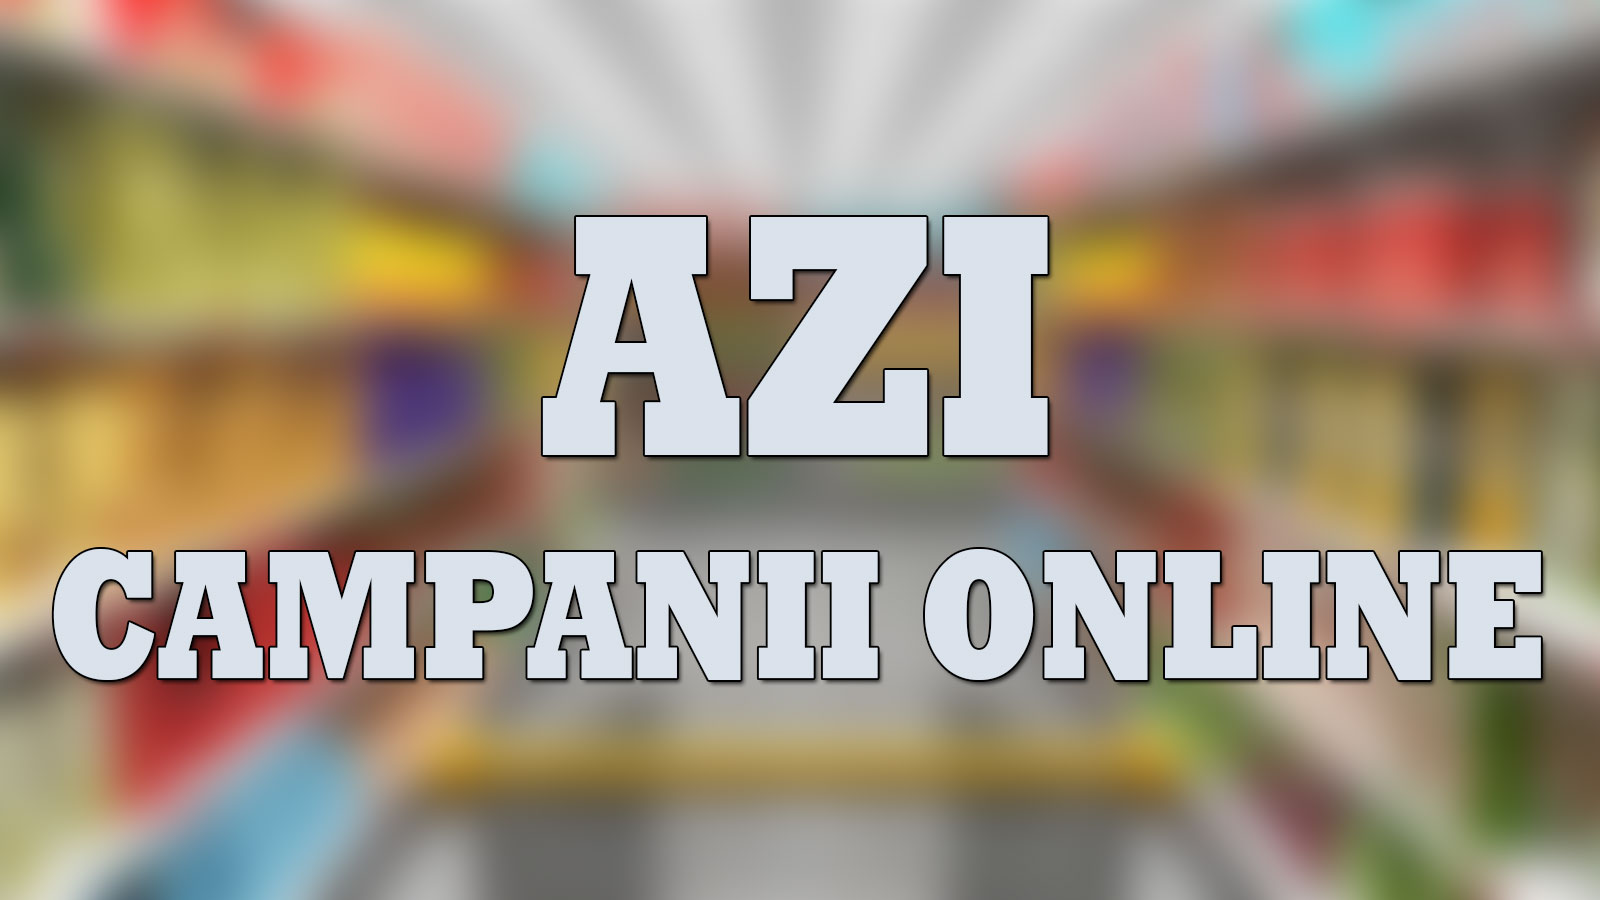 Reduceri și Campanii Online #66: Azi eMAG, Flanco, PC Garage, Fashion Days [...]